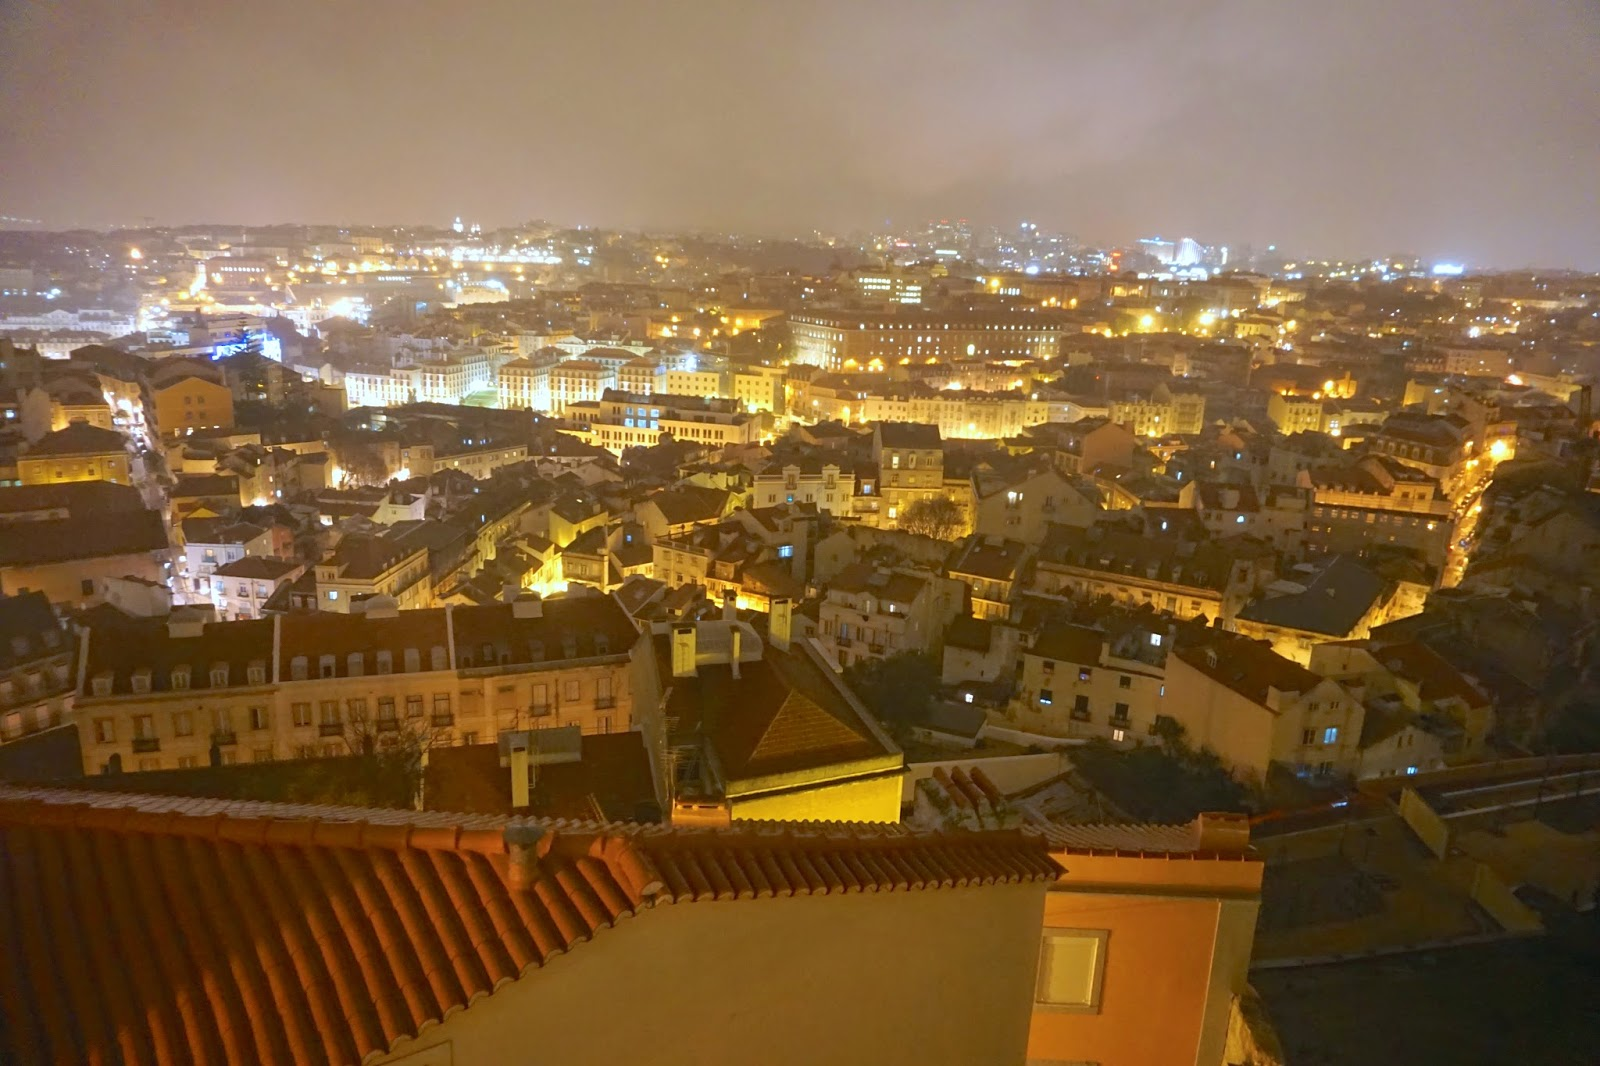 View from the balcony of Miradouro Da Graca at night in Lisbon overlooking the city lights